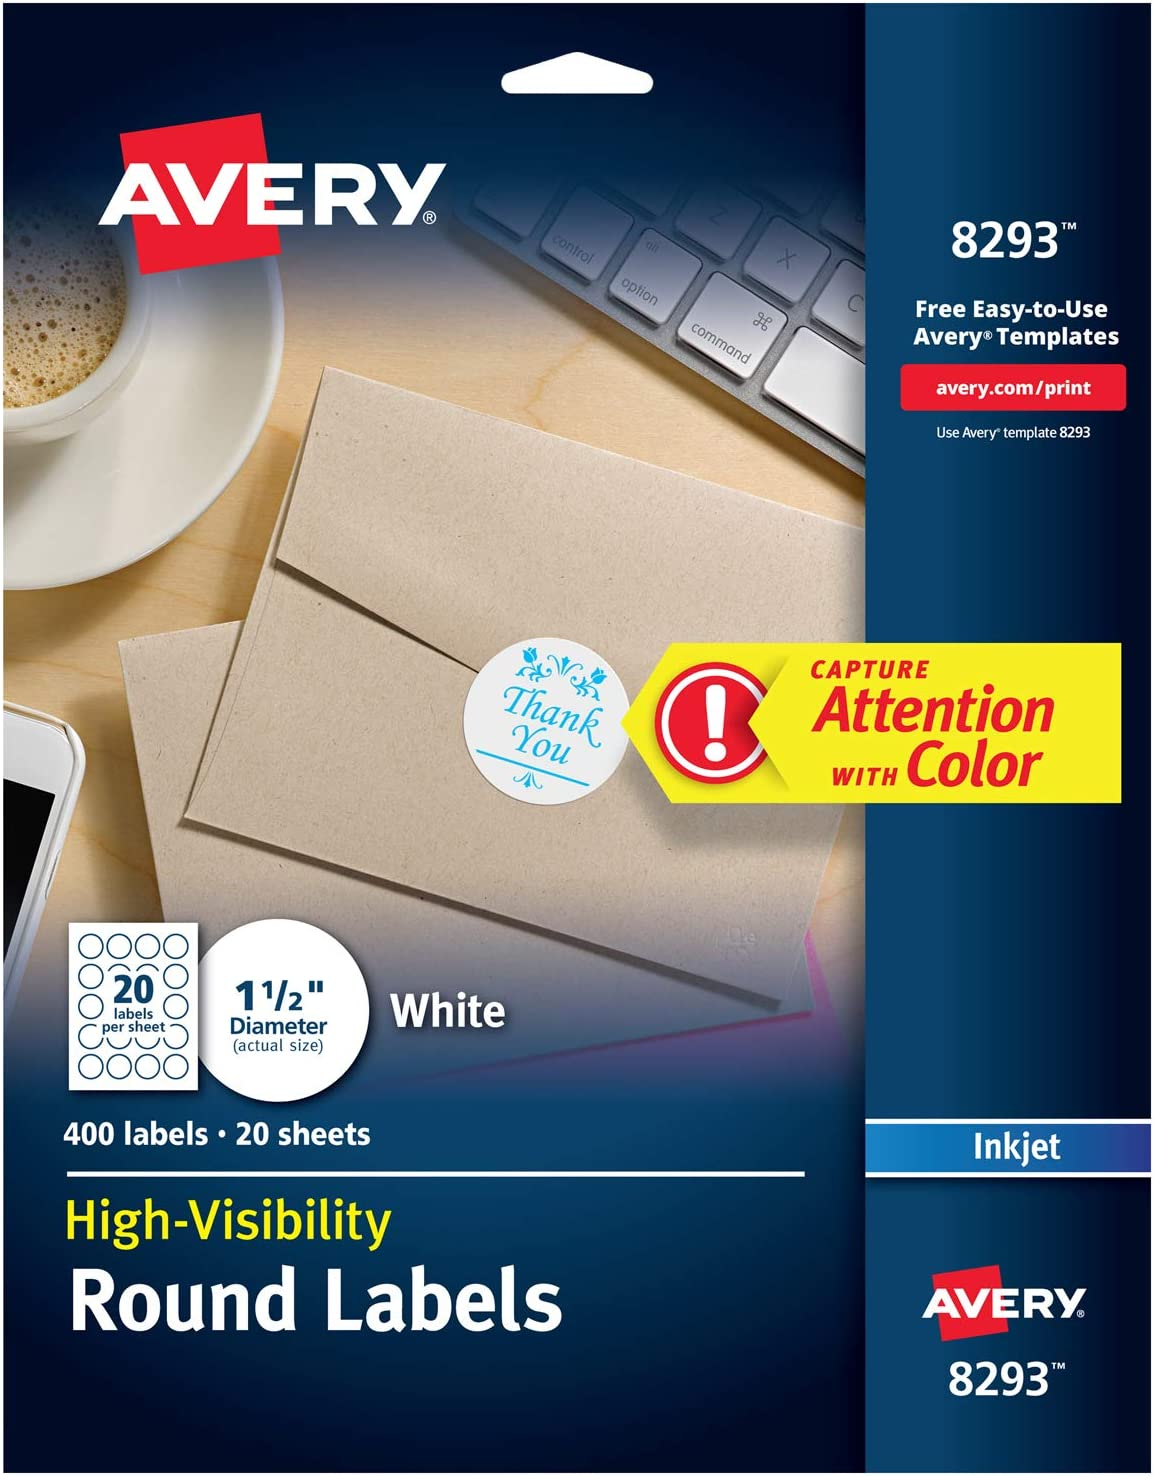 Avery White Round Labels with Sure Feed, 1.5